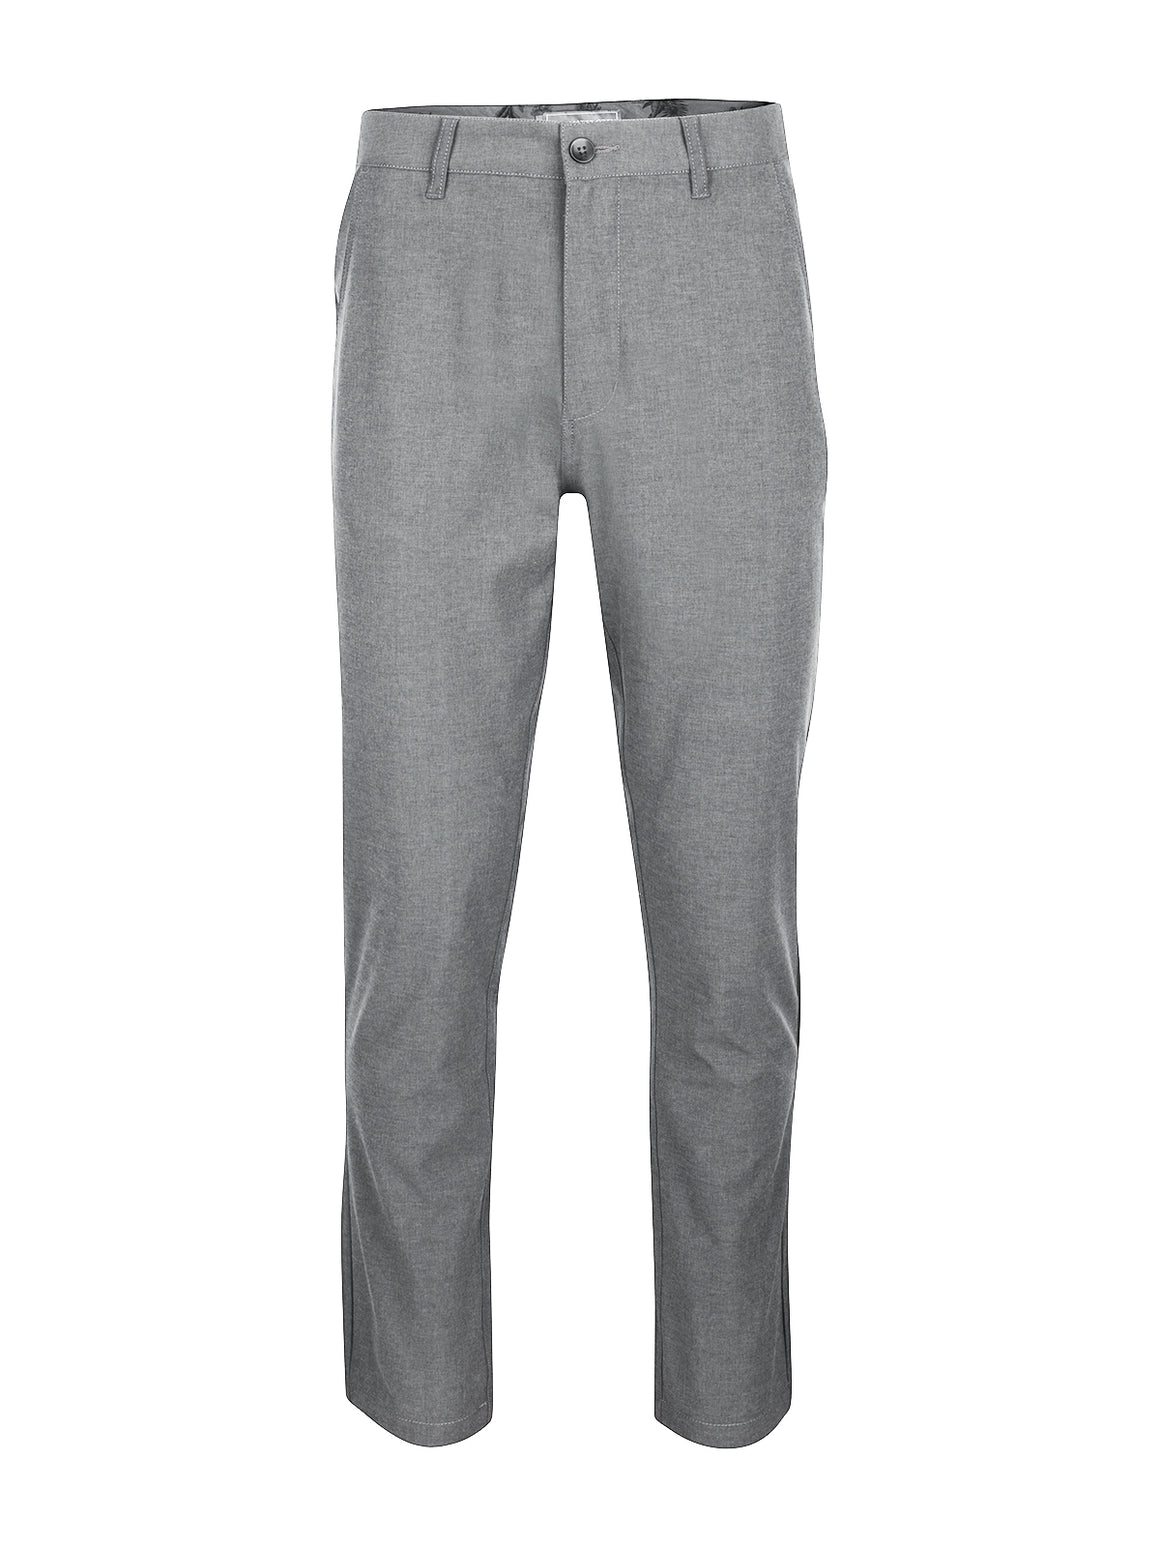 Traveler FIT101 Pant - Opal Grey